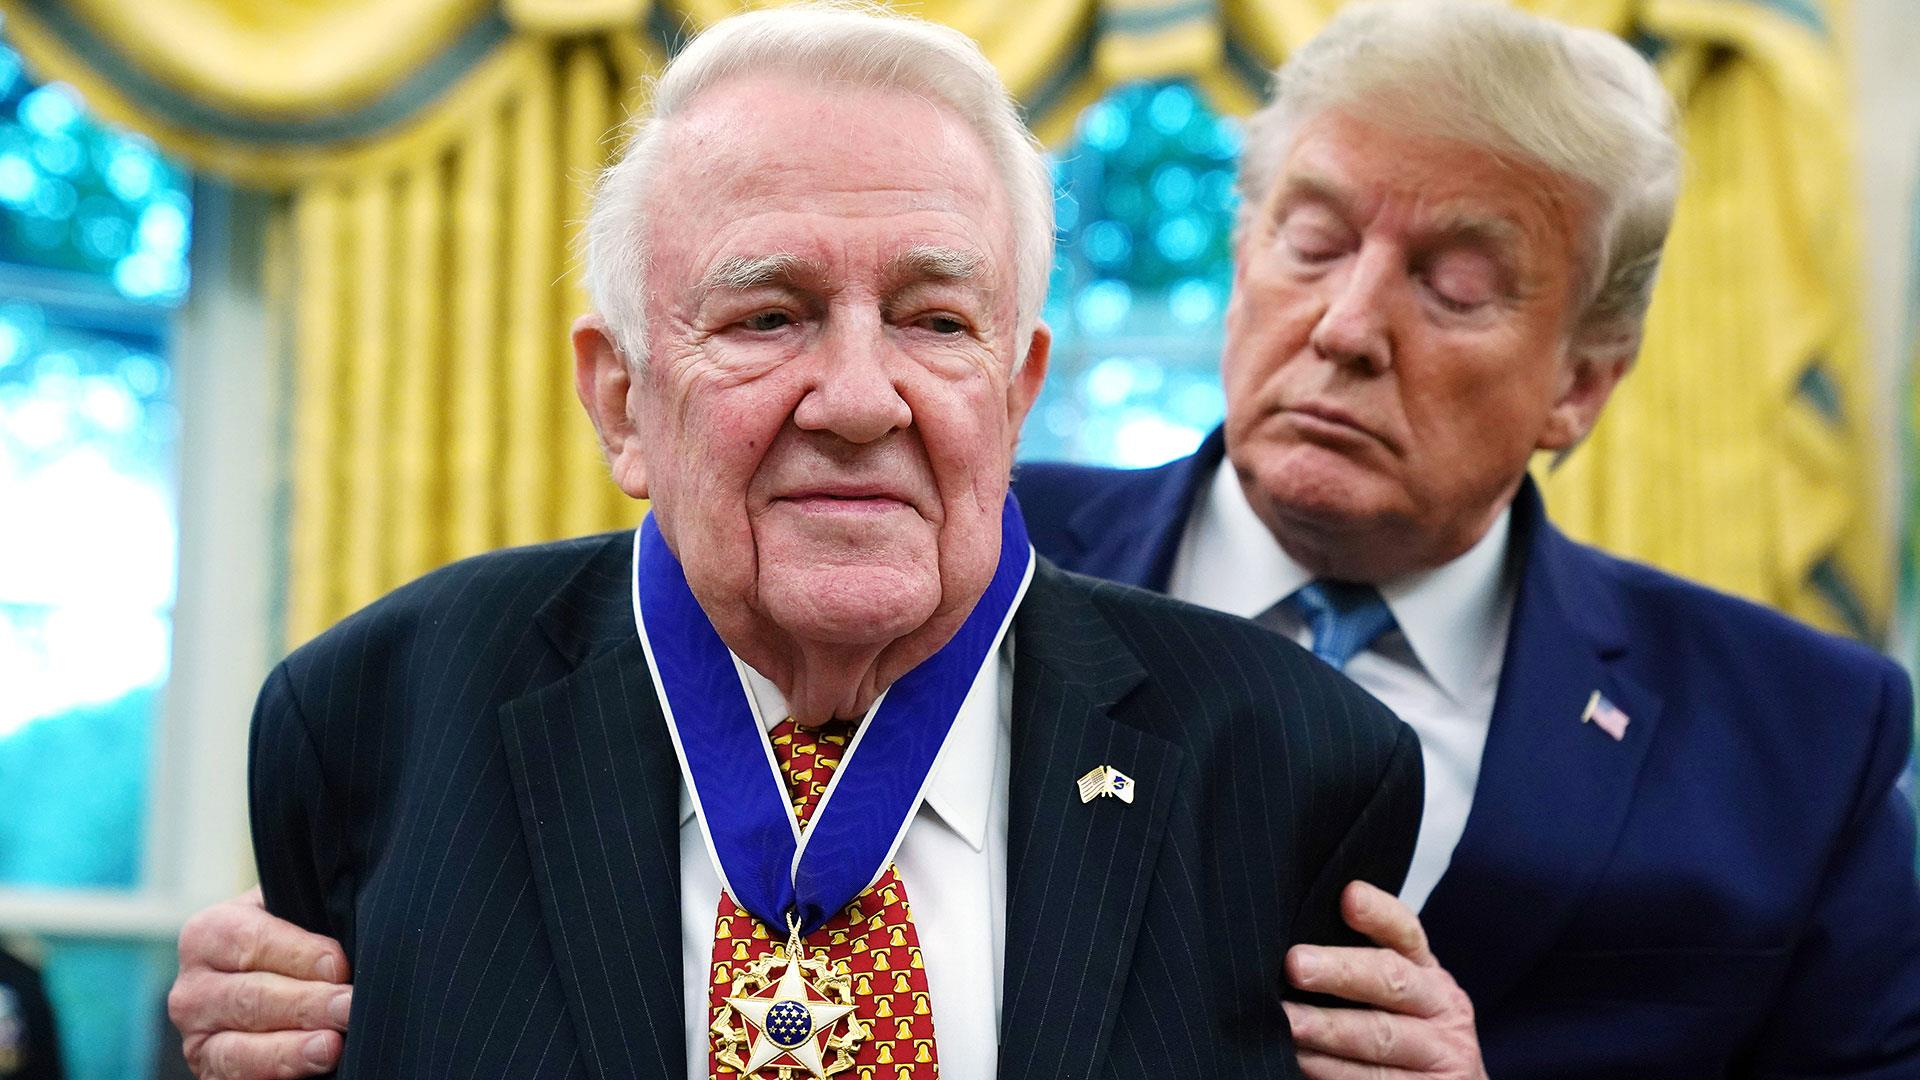 Trump presents Medal of Freedom to former Attorney General Edwin Meese